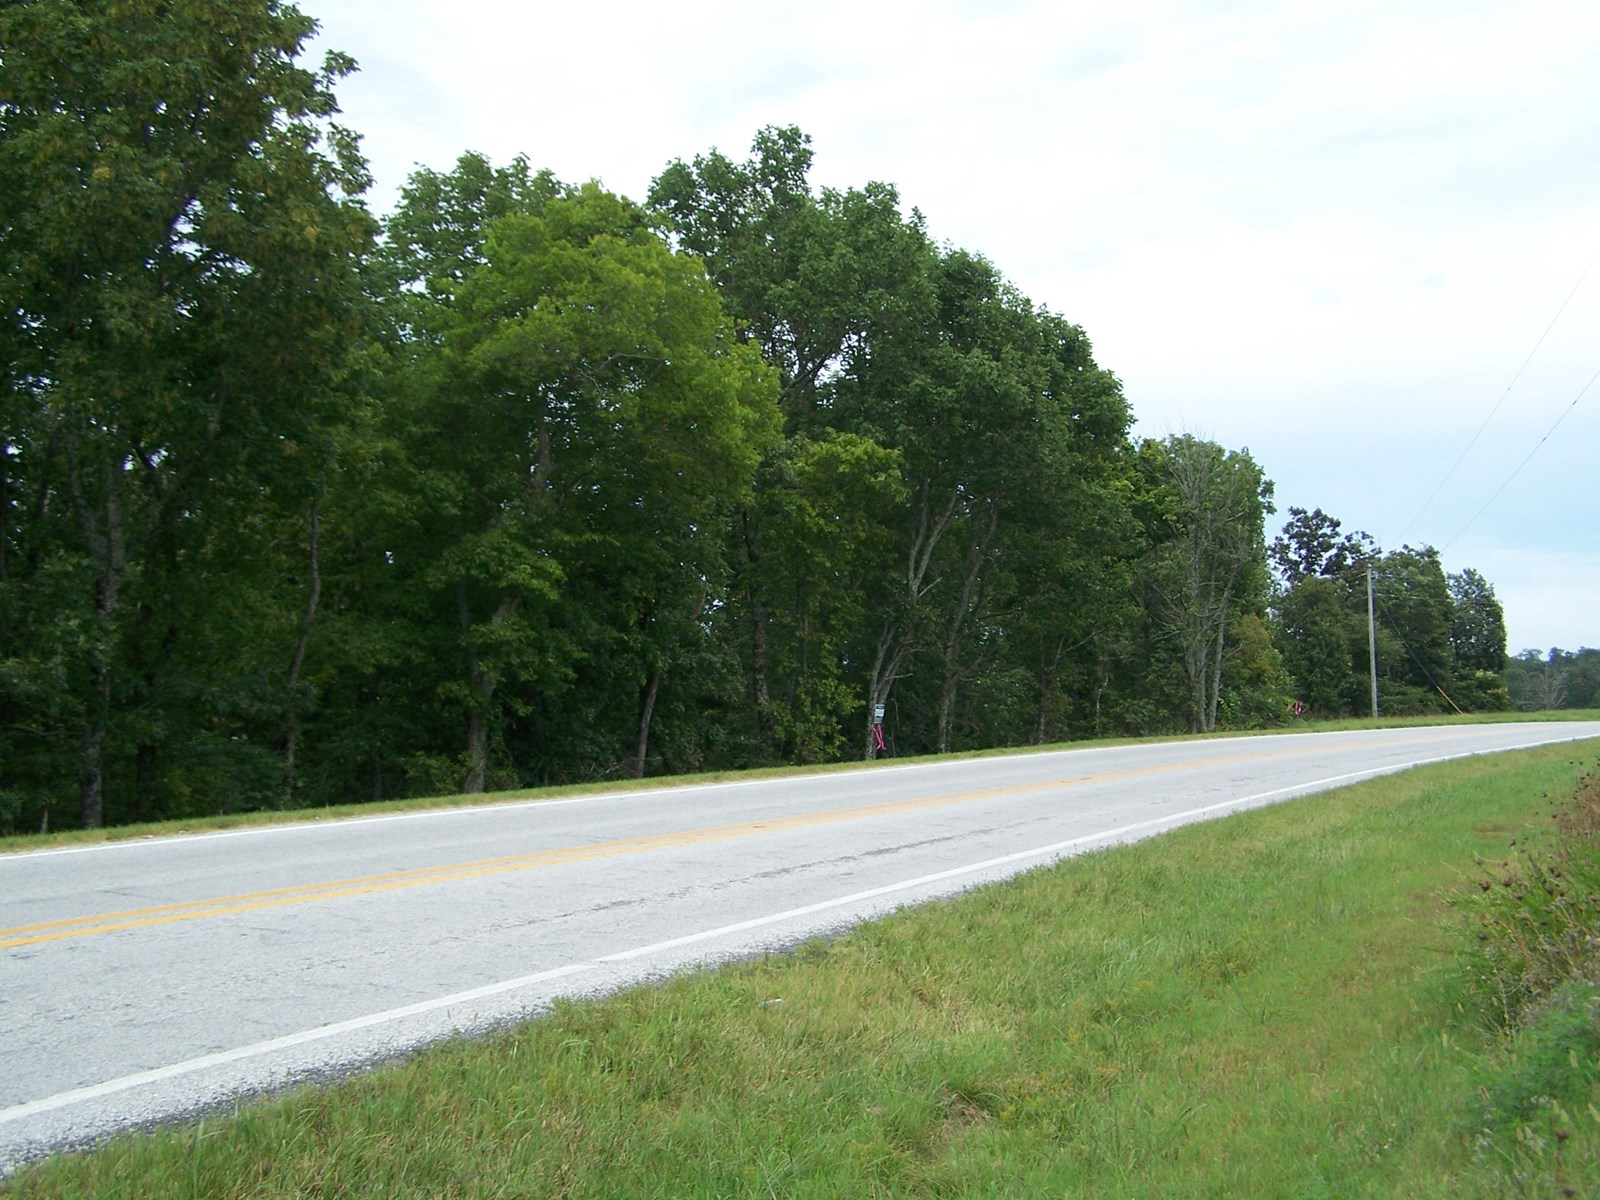 Arkansas Land For Sale with Hwy Frontage